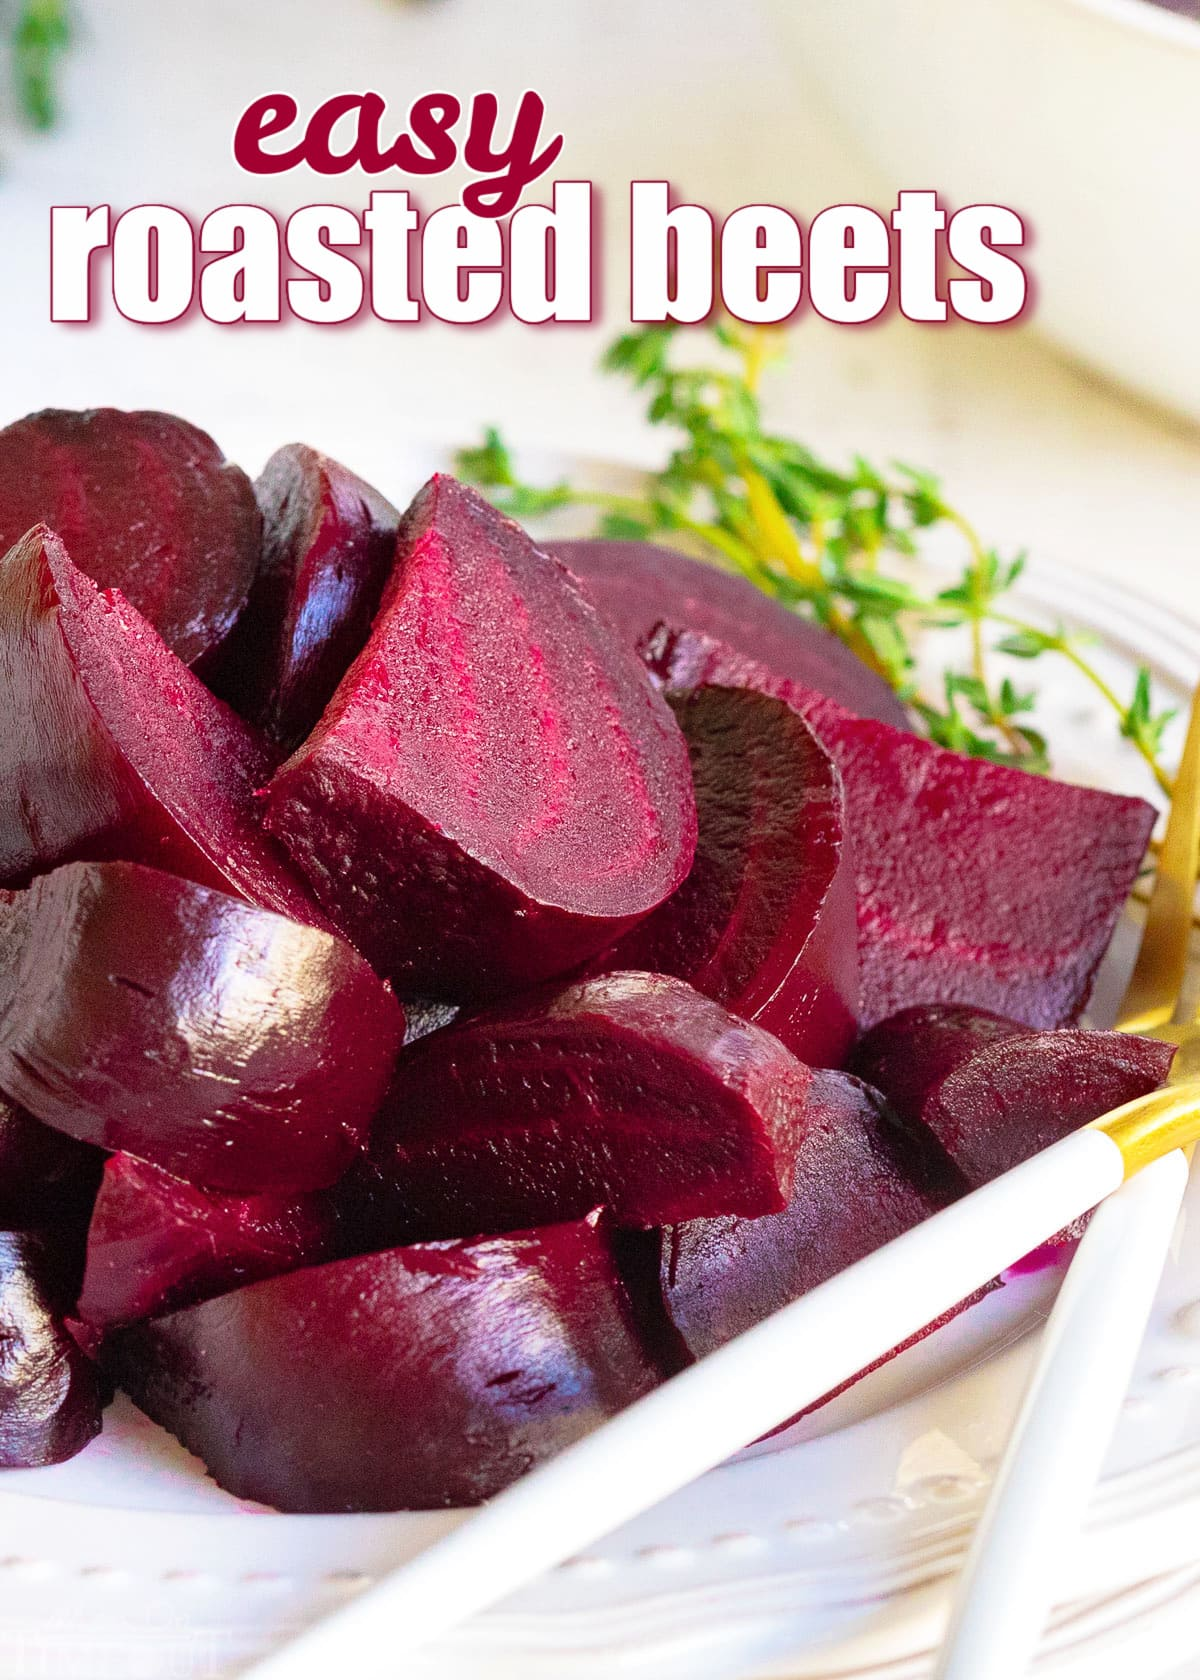 roasted beets cut into wedges on white plate with thyme sprig on plate.